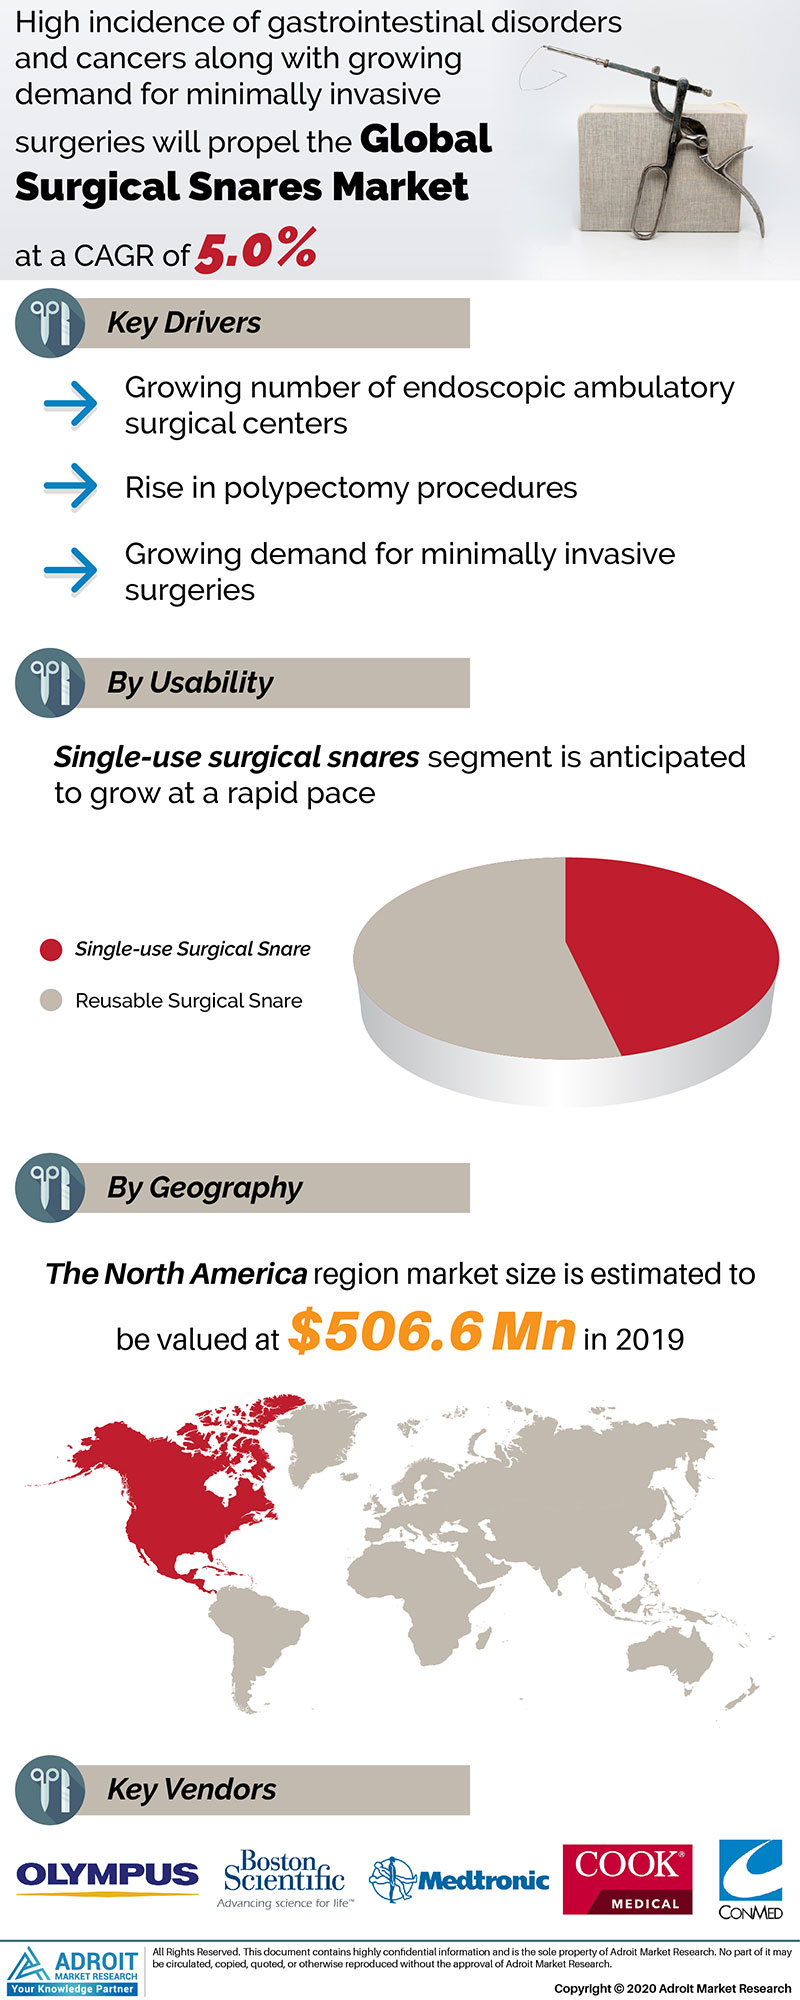 Surgical Snares Market Size 2017 By Application, Product, Region and Forecast 2019 to 2025